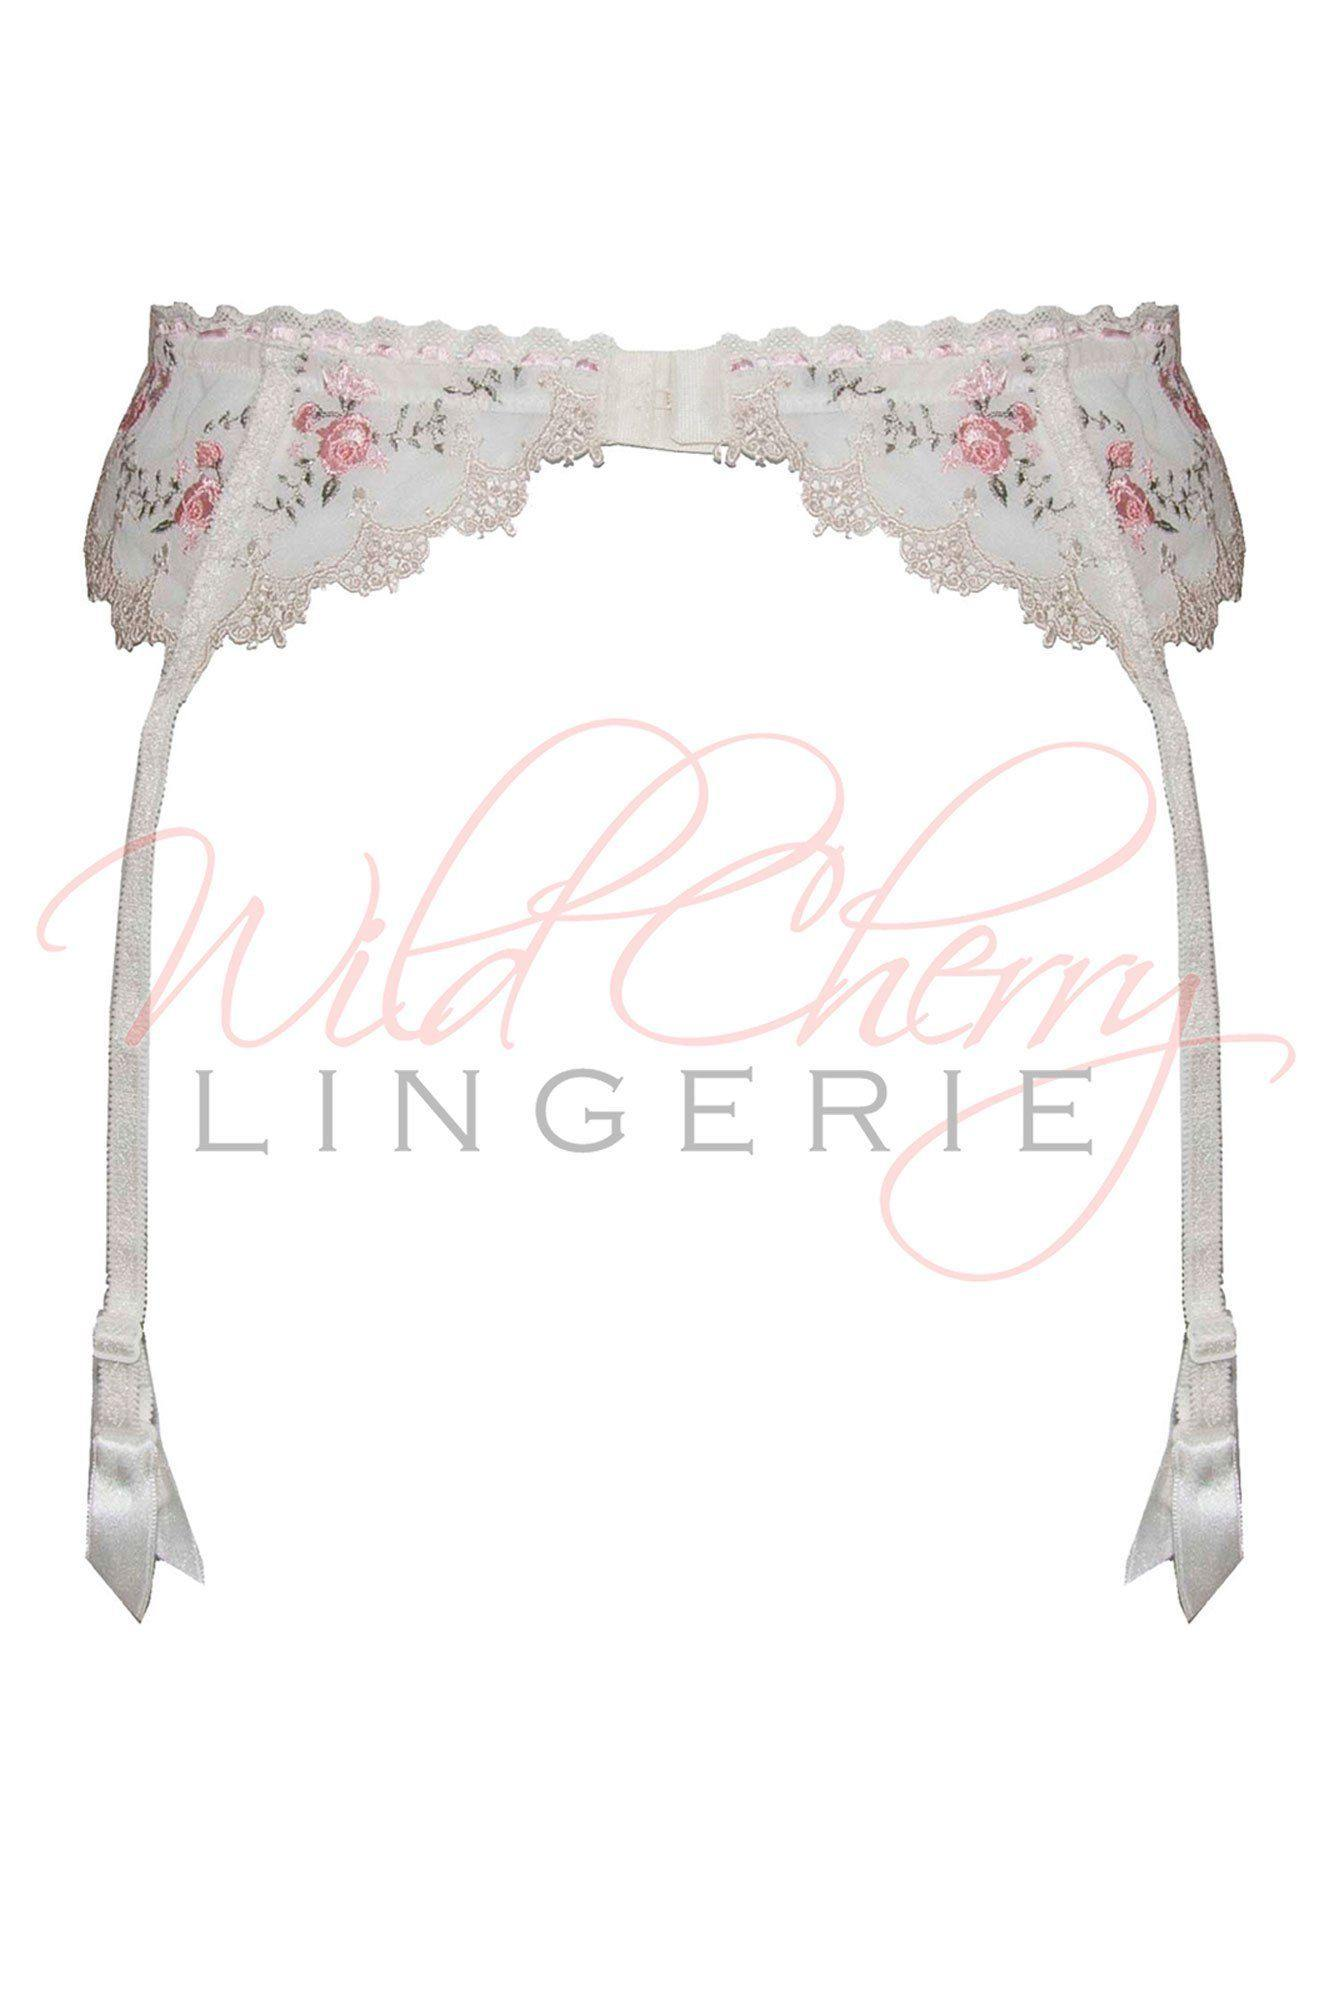 Alisa Collection Suspender Belt VIPA Lingerie, Suspender Belts & Garter Leg, VIPA Lingerie - Wild Cherry Lingerie